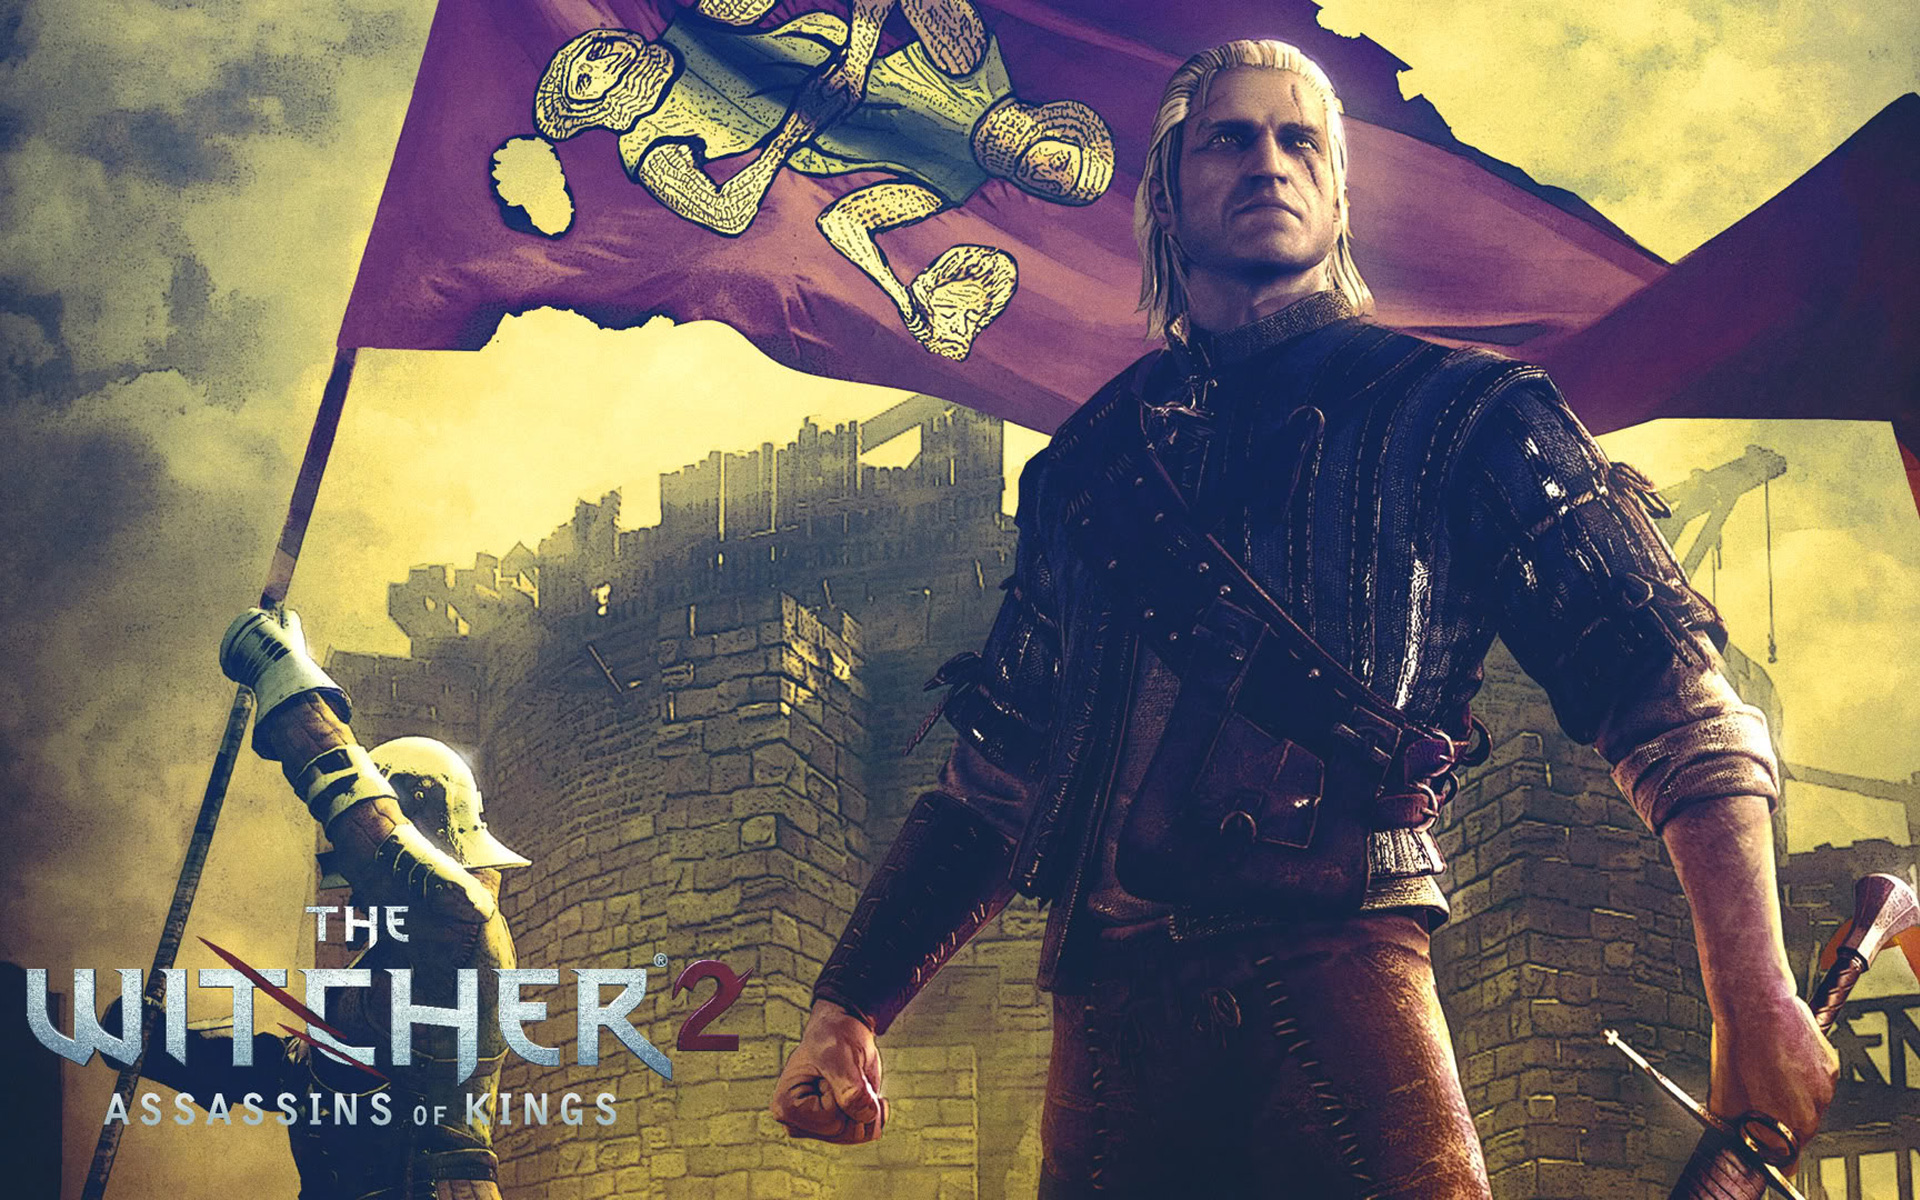 Free The Witcher 2 Wallpaper in 1920x1200